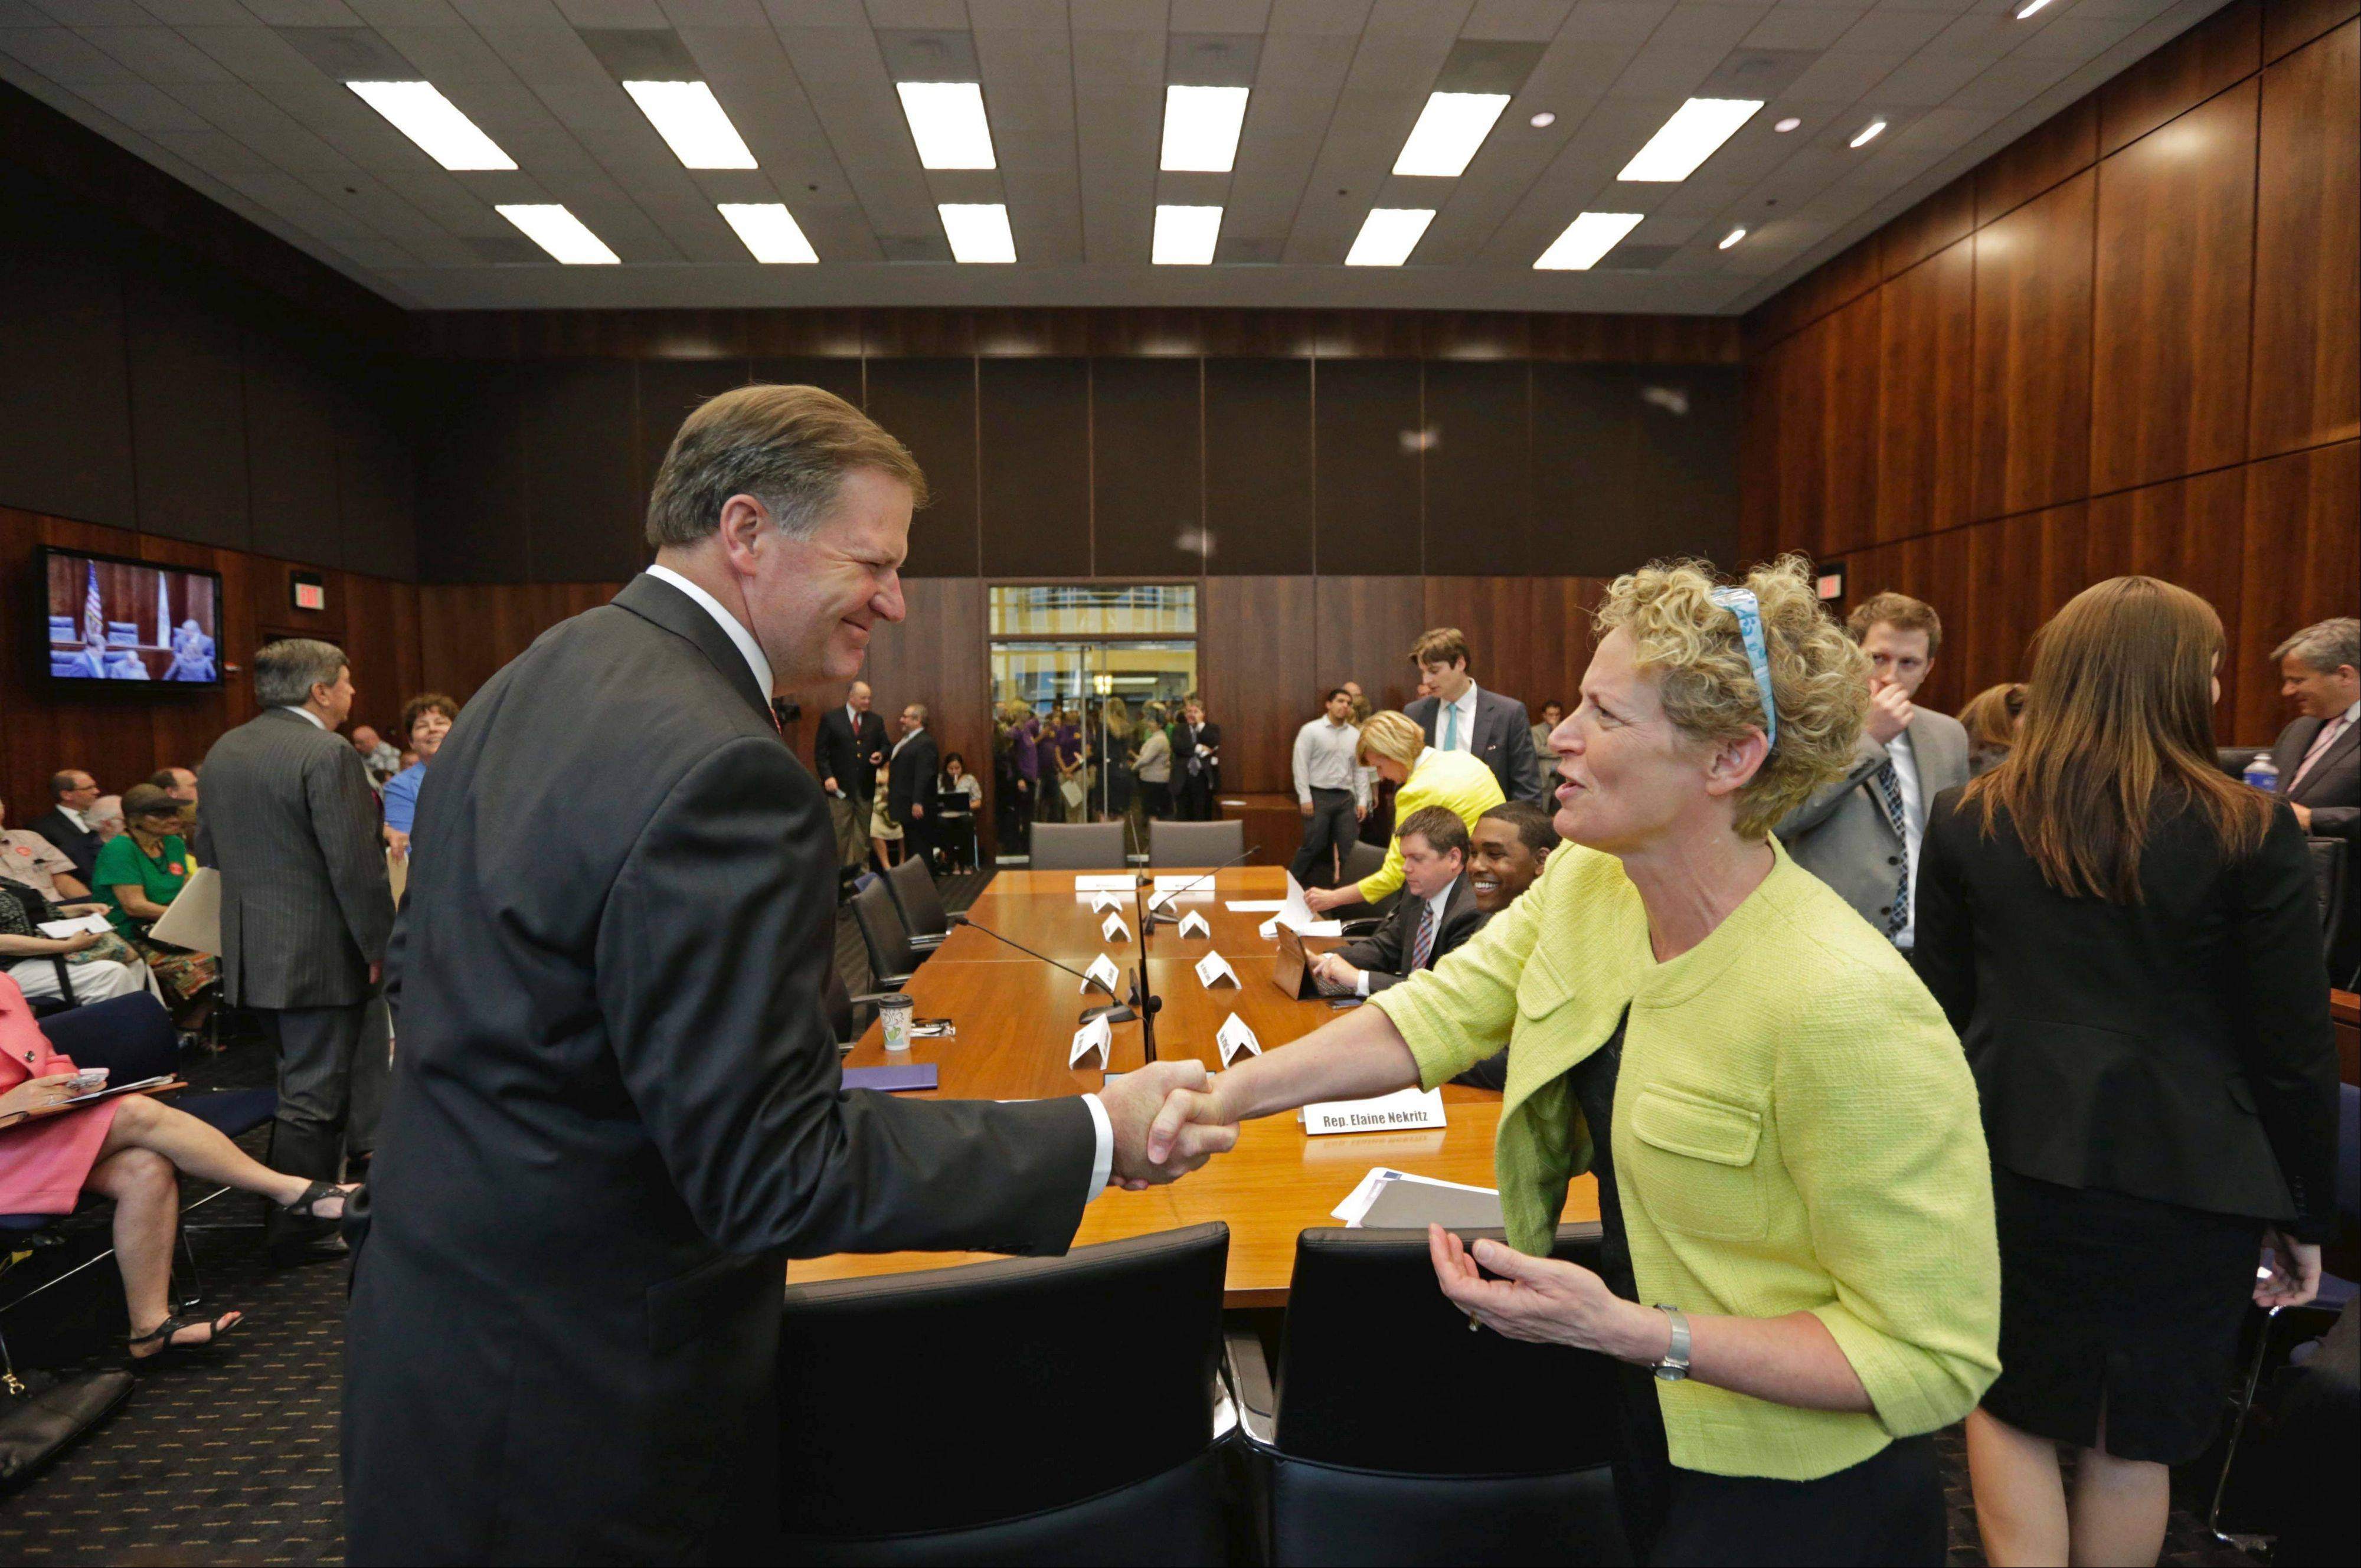 State Sen. Bill Brady and state Rep. Elaine Nekritz shake hands before members of a bipartisan pension reform committee hold a public hearing in June in Chicago. A vote on a proposal to solve the state's $100 billion pension crisis during the legislature's veto session is becoming increasingly unlikely.